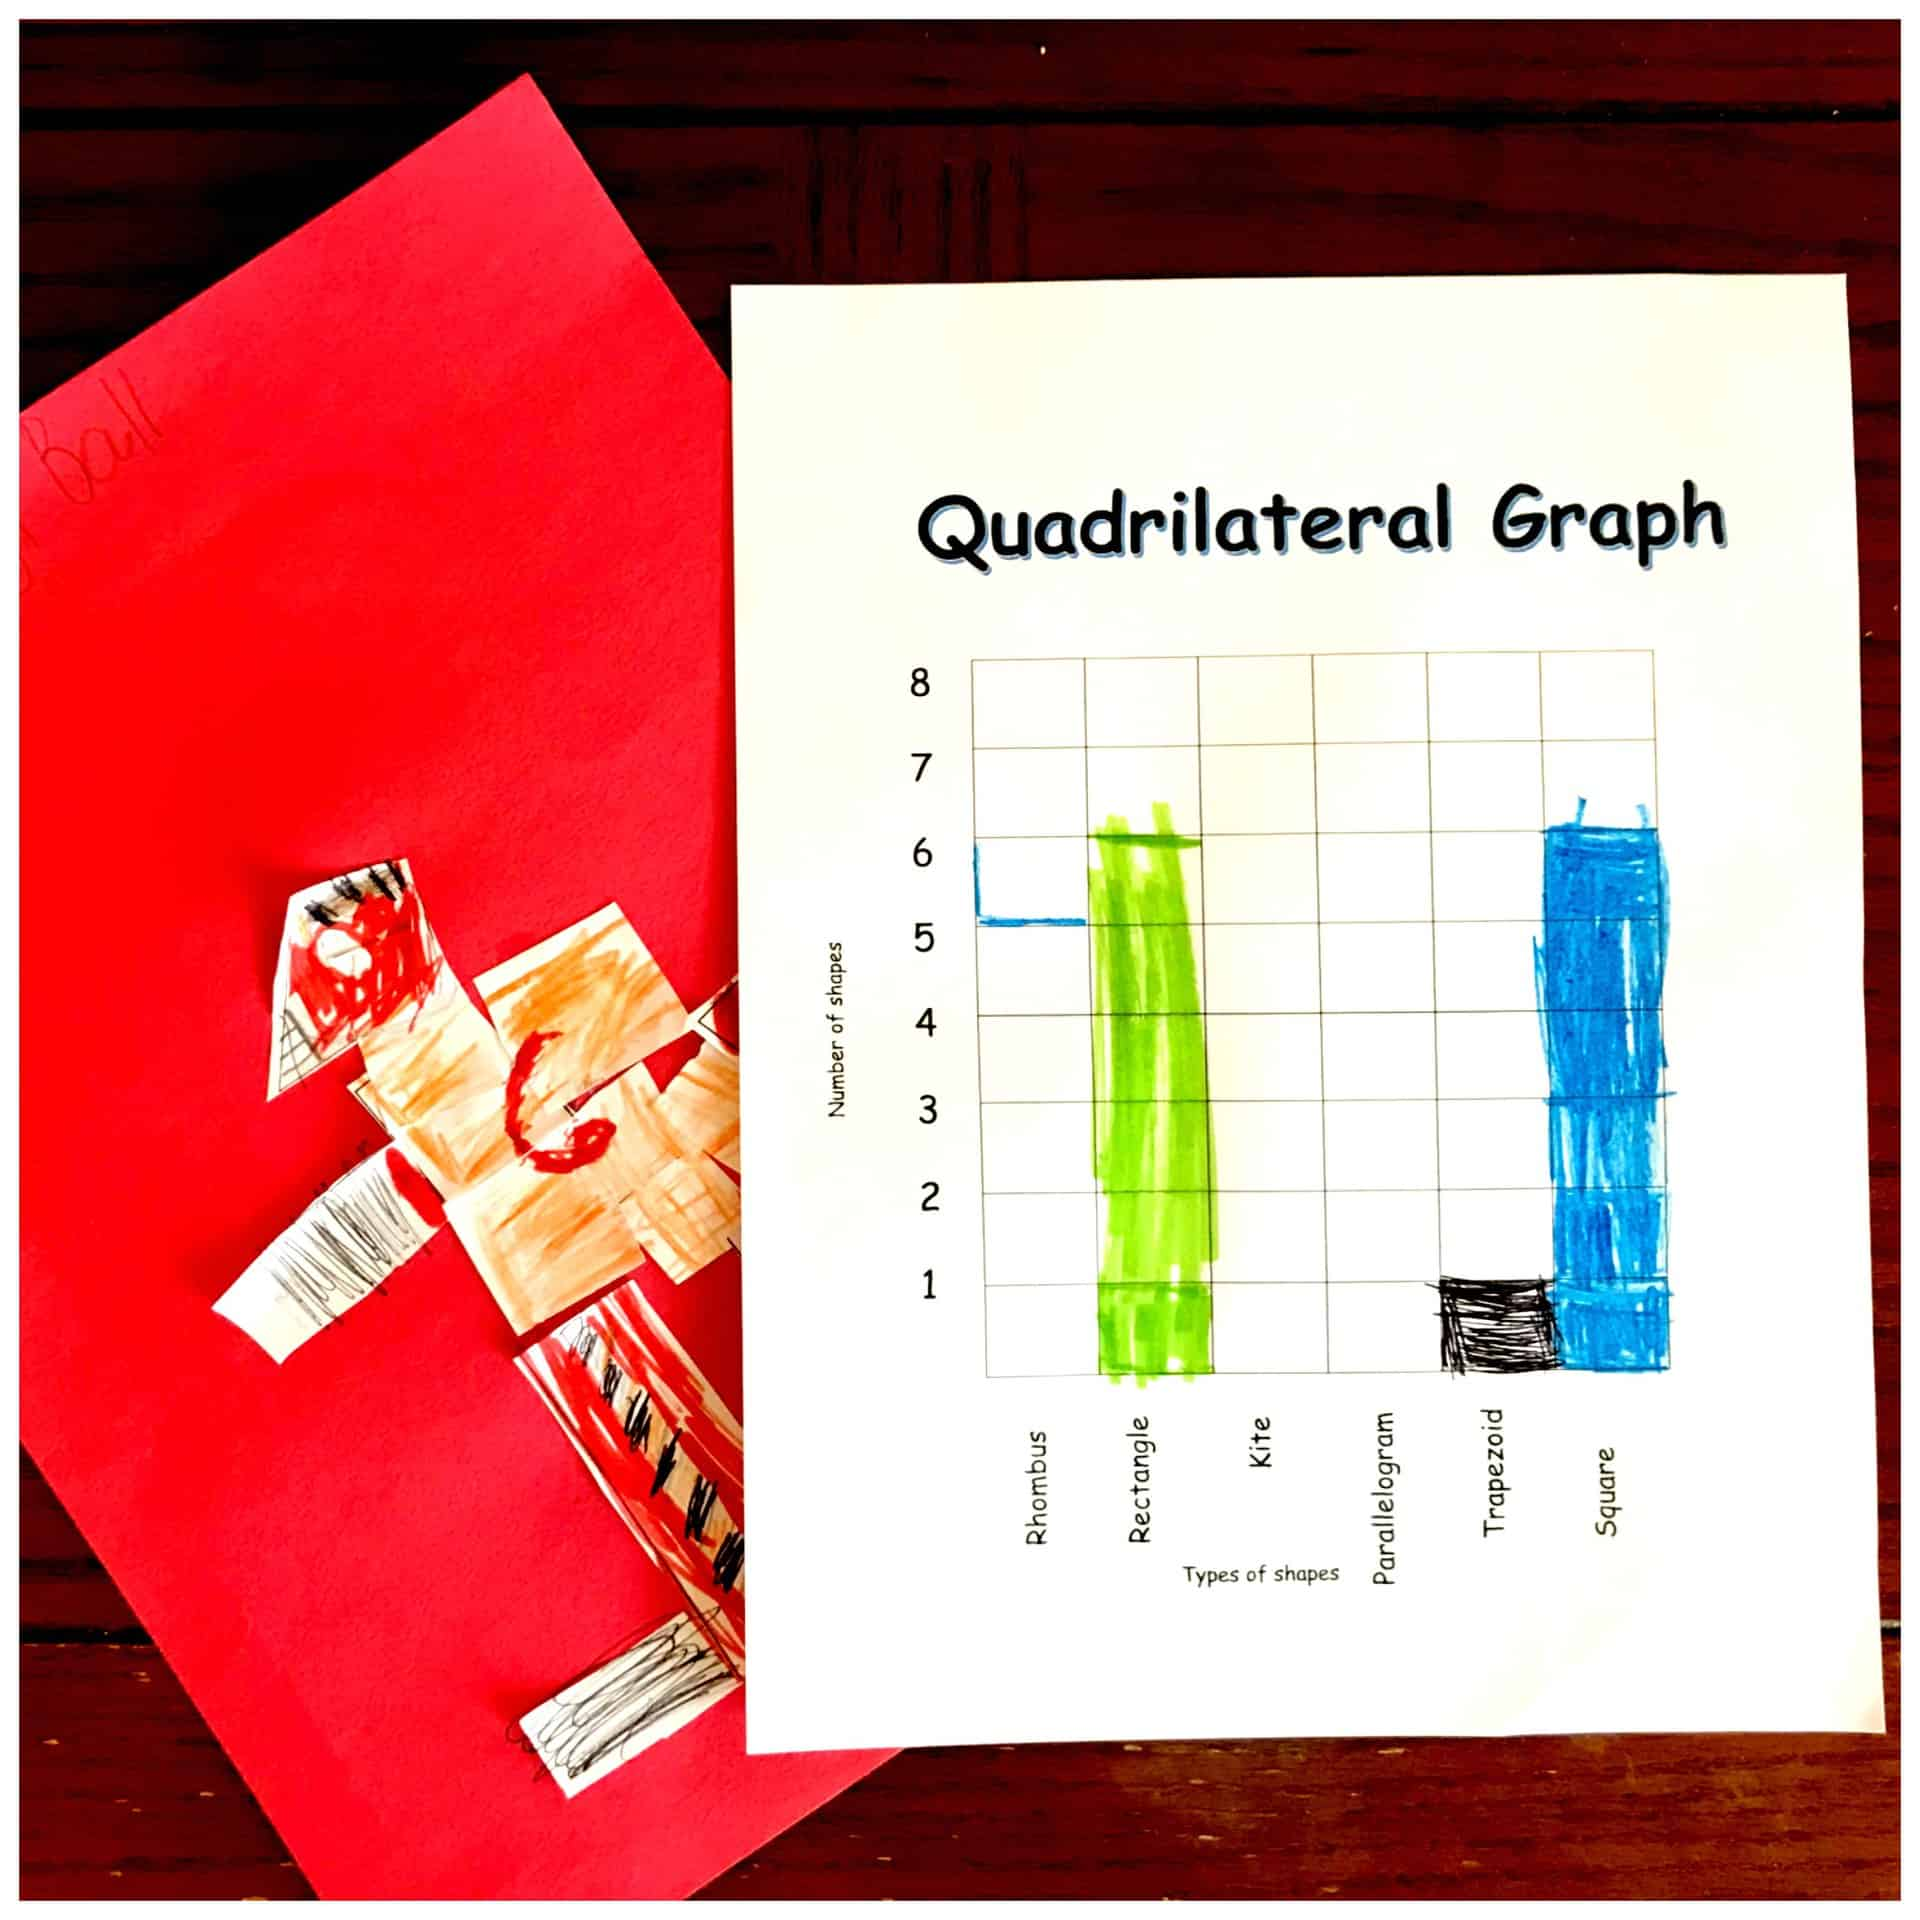 Explore Quadrilaterals With This Free Quadrilateral Art Project What does the family tree look like for the quadrilaterals? free quadrilateral art project